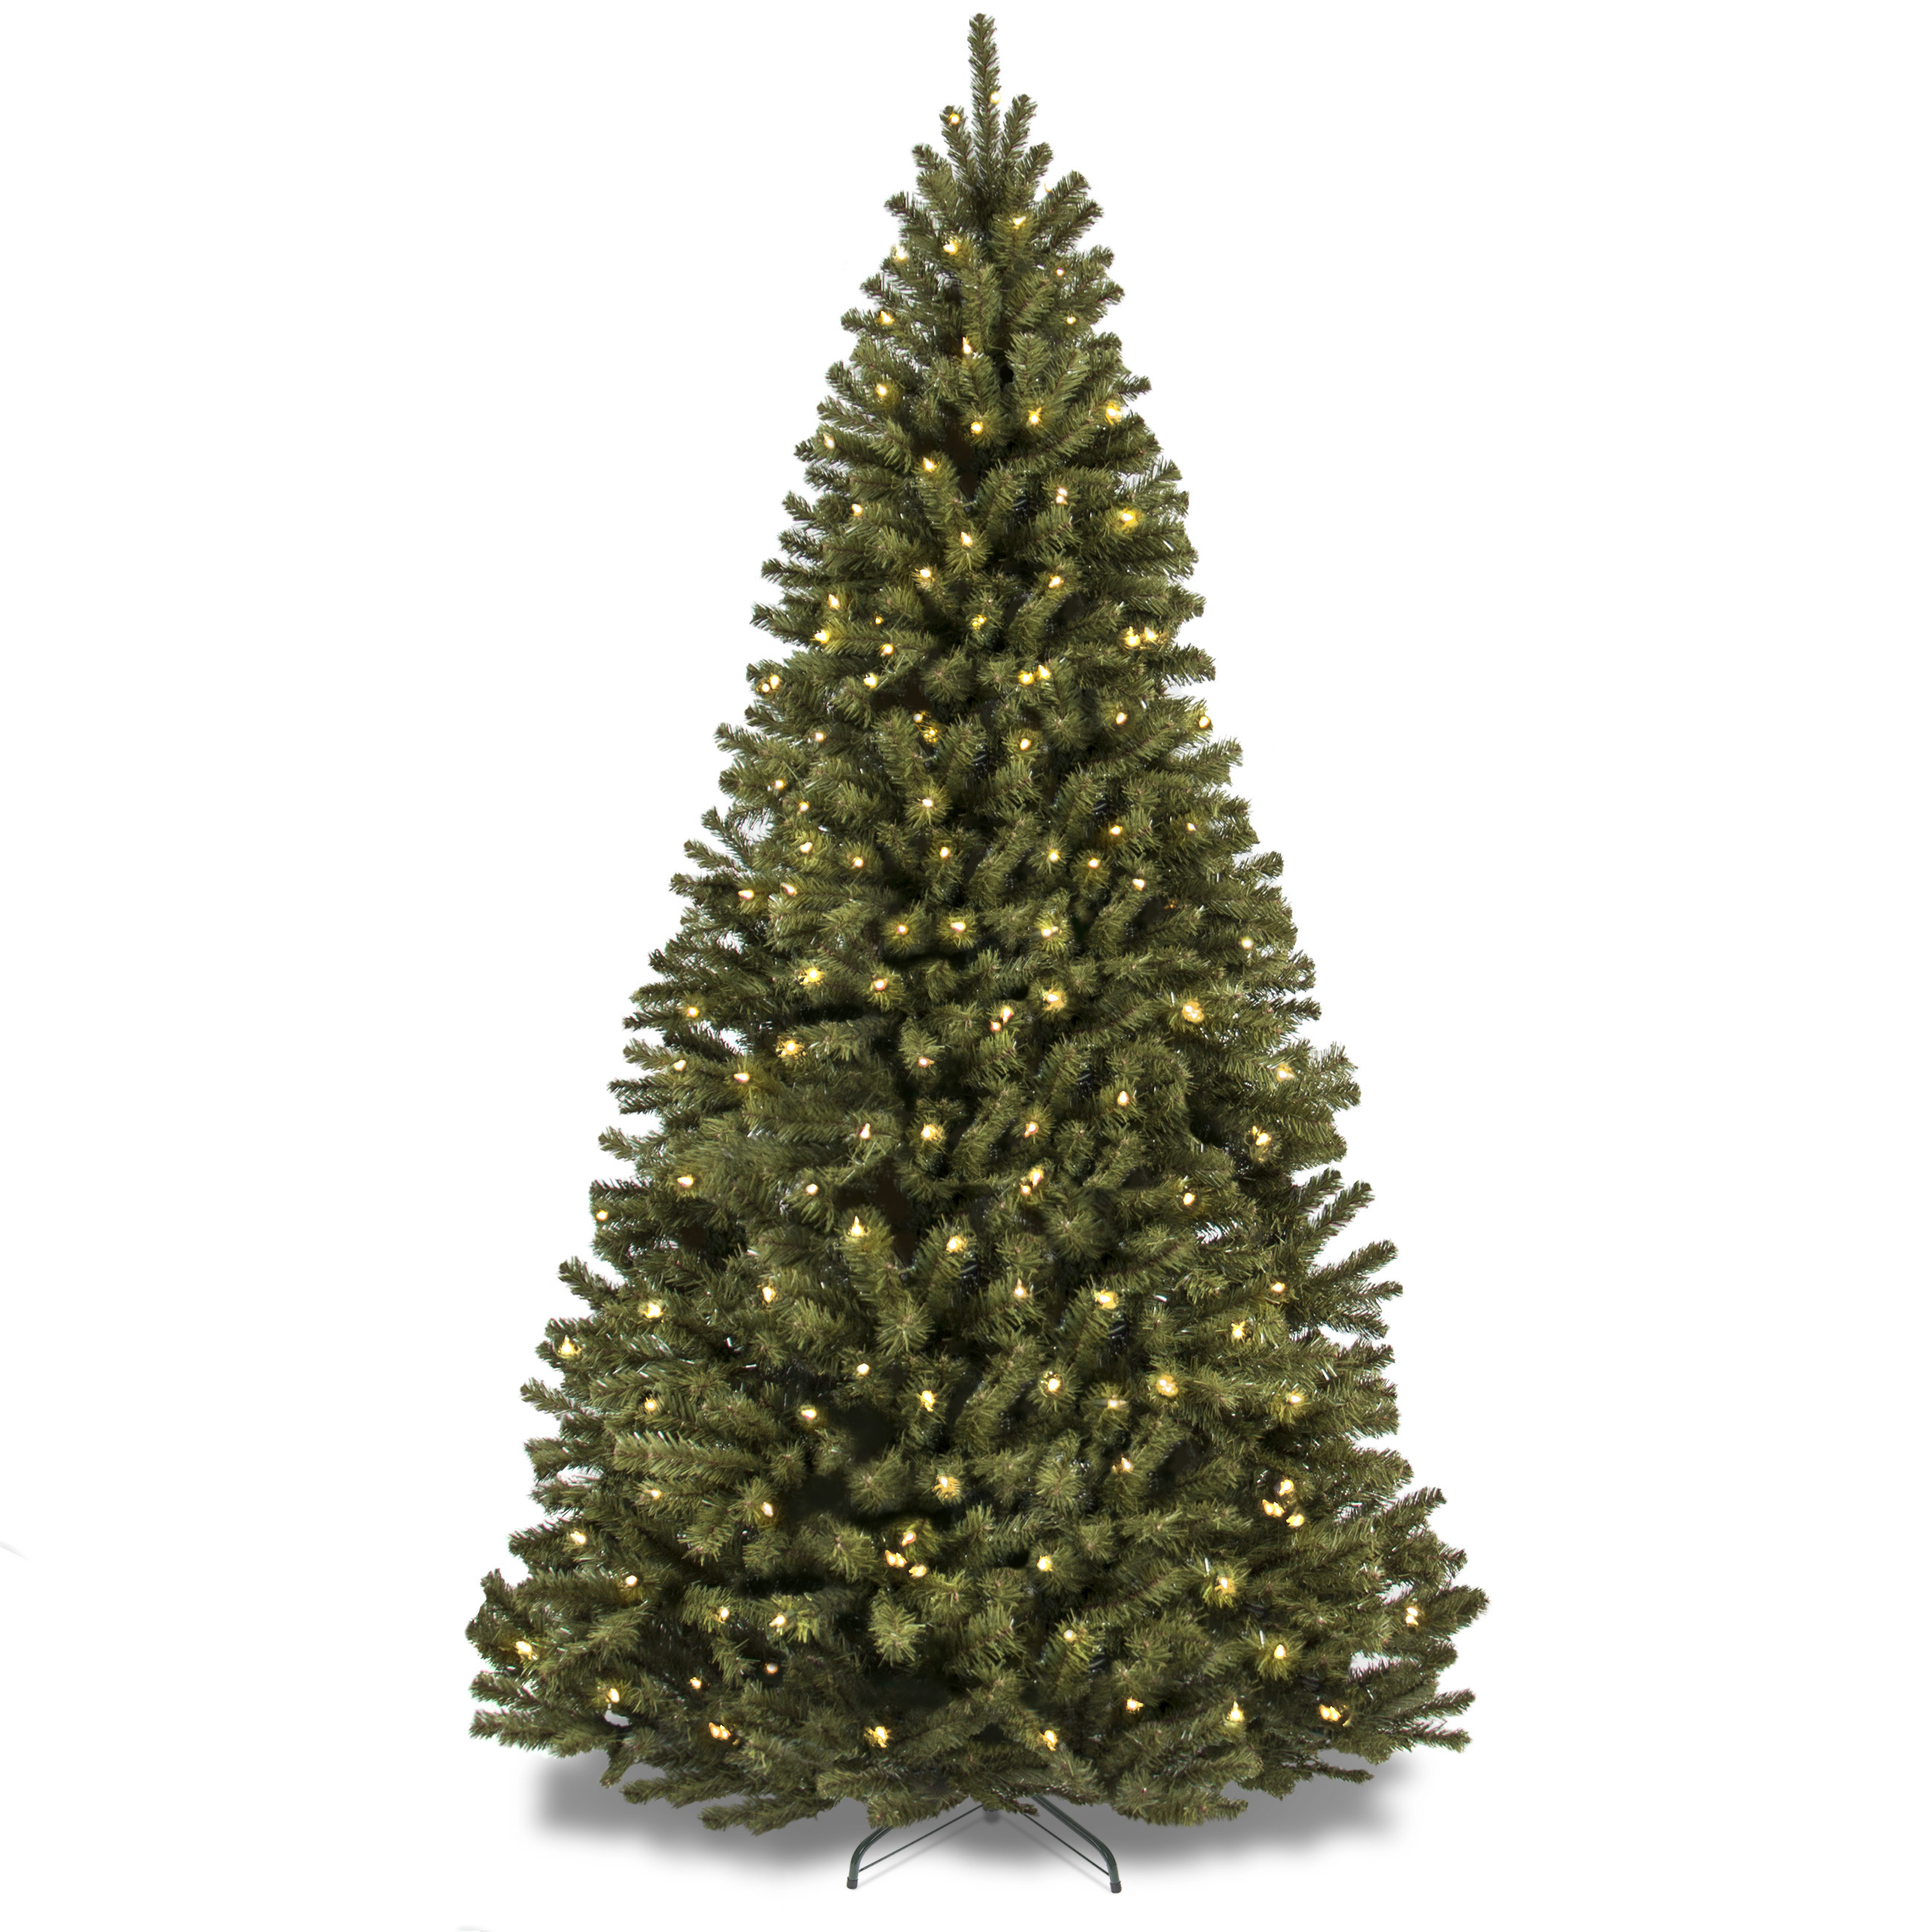 Holiday Time Artificial Christmas Trees Pre Lit 7 5' Flocked  - 6ft Black Pop Up Christmas Tree